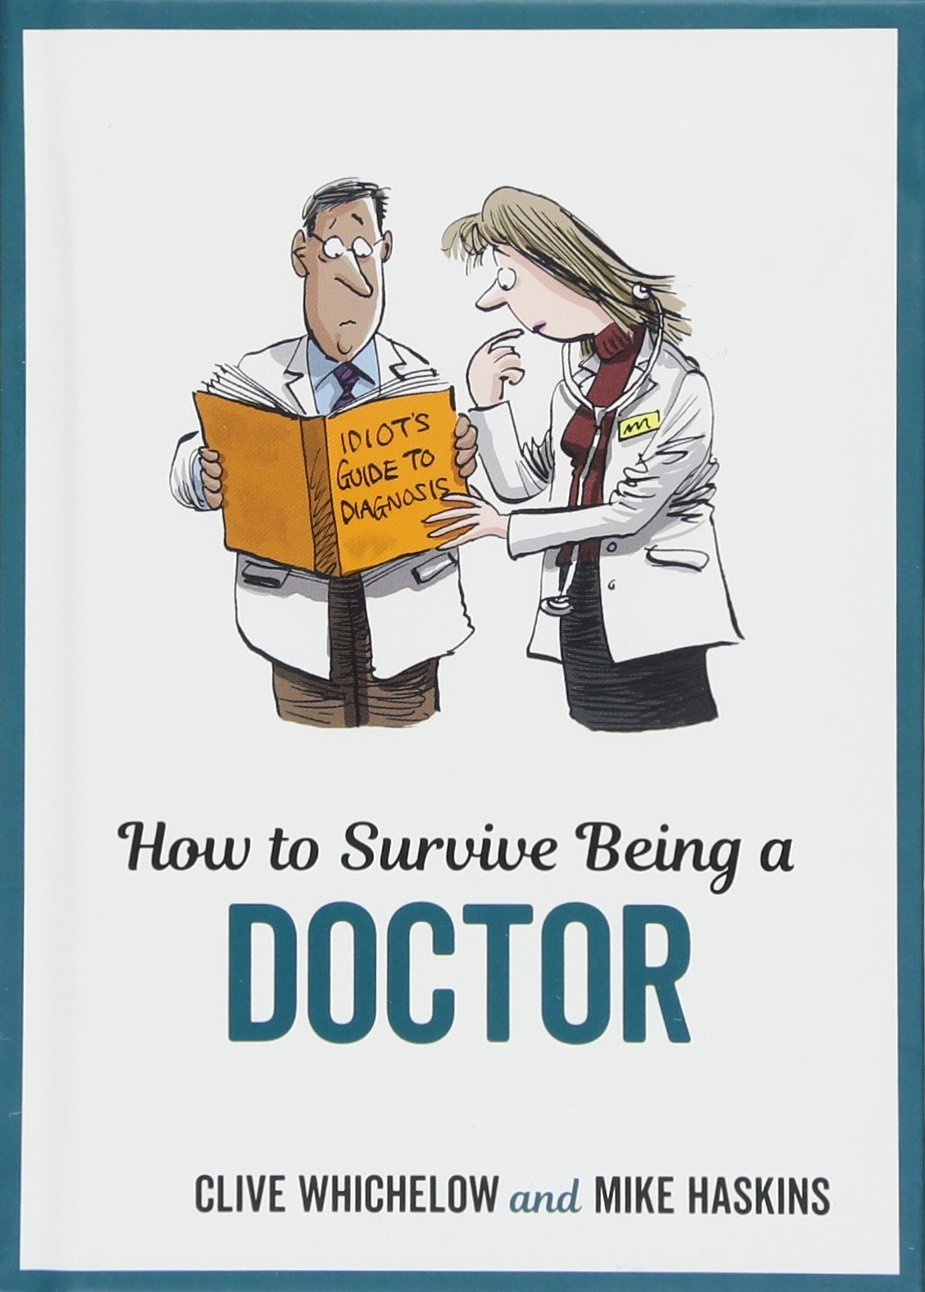 Read Online How to Survive Being a Doctor: Tongue-In-Cheek Advice and Cheeky Illustrations about Being a Doctor pdf epub